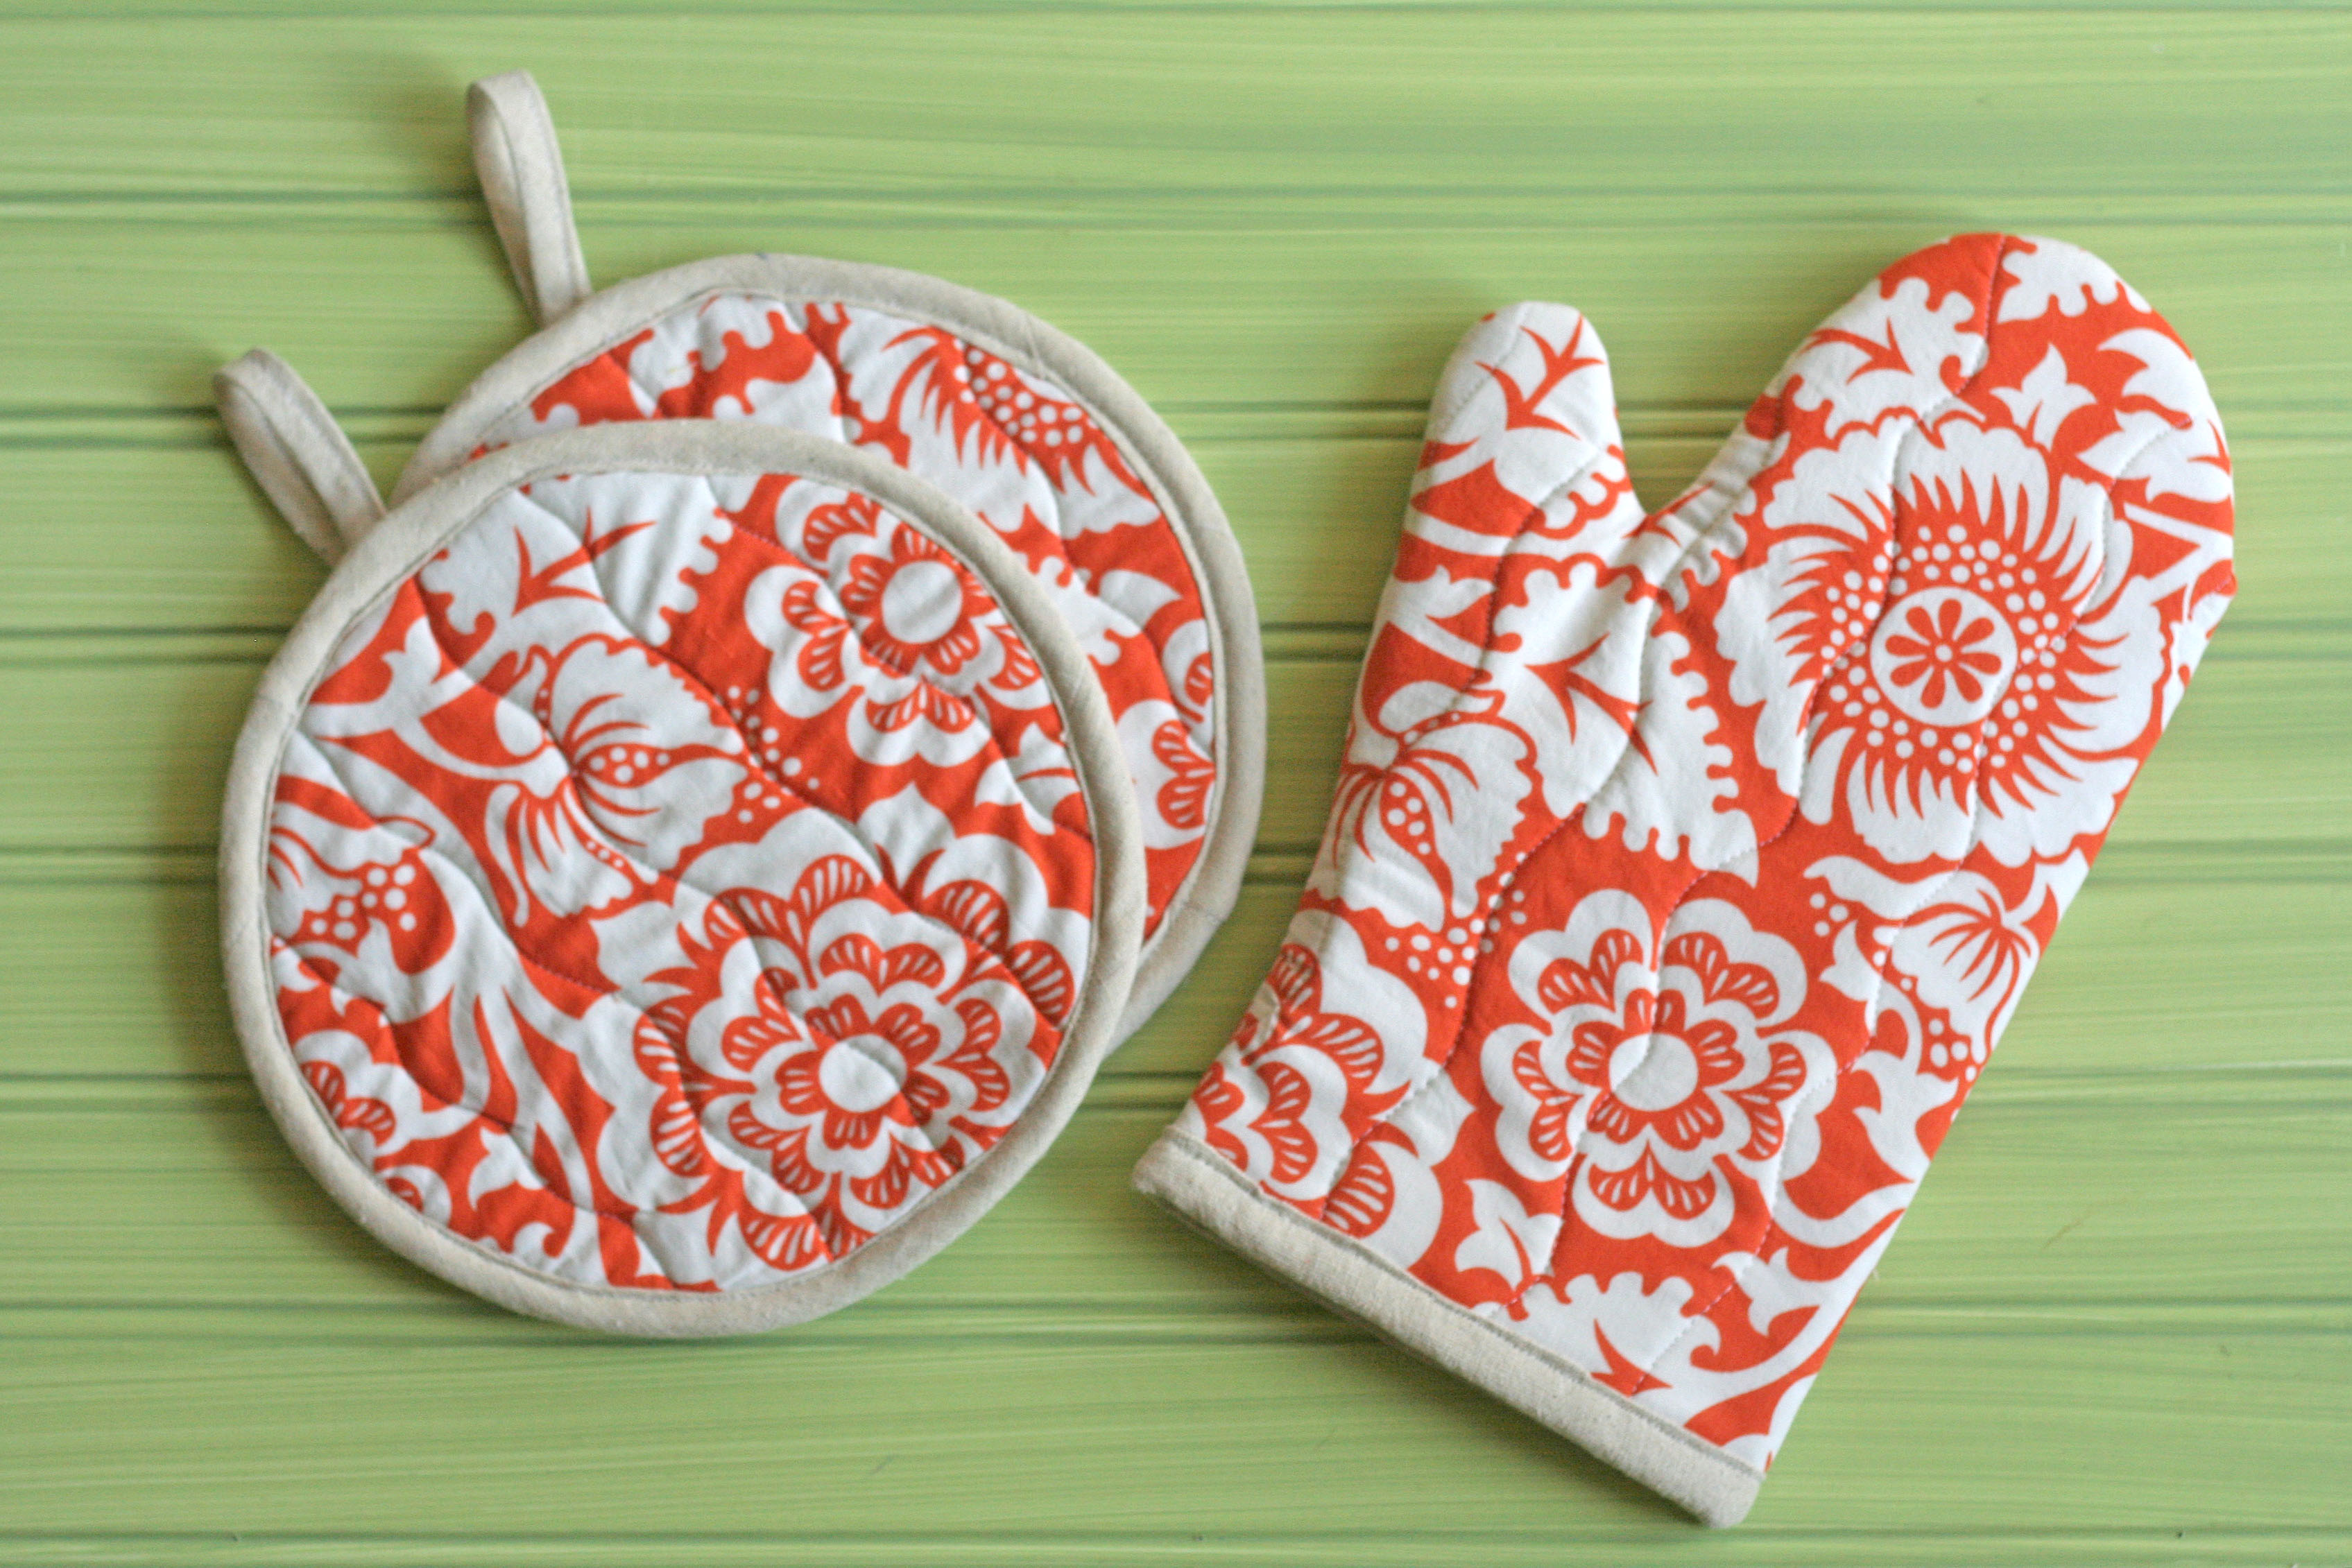 How to make homemade oven mitts — pic 2